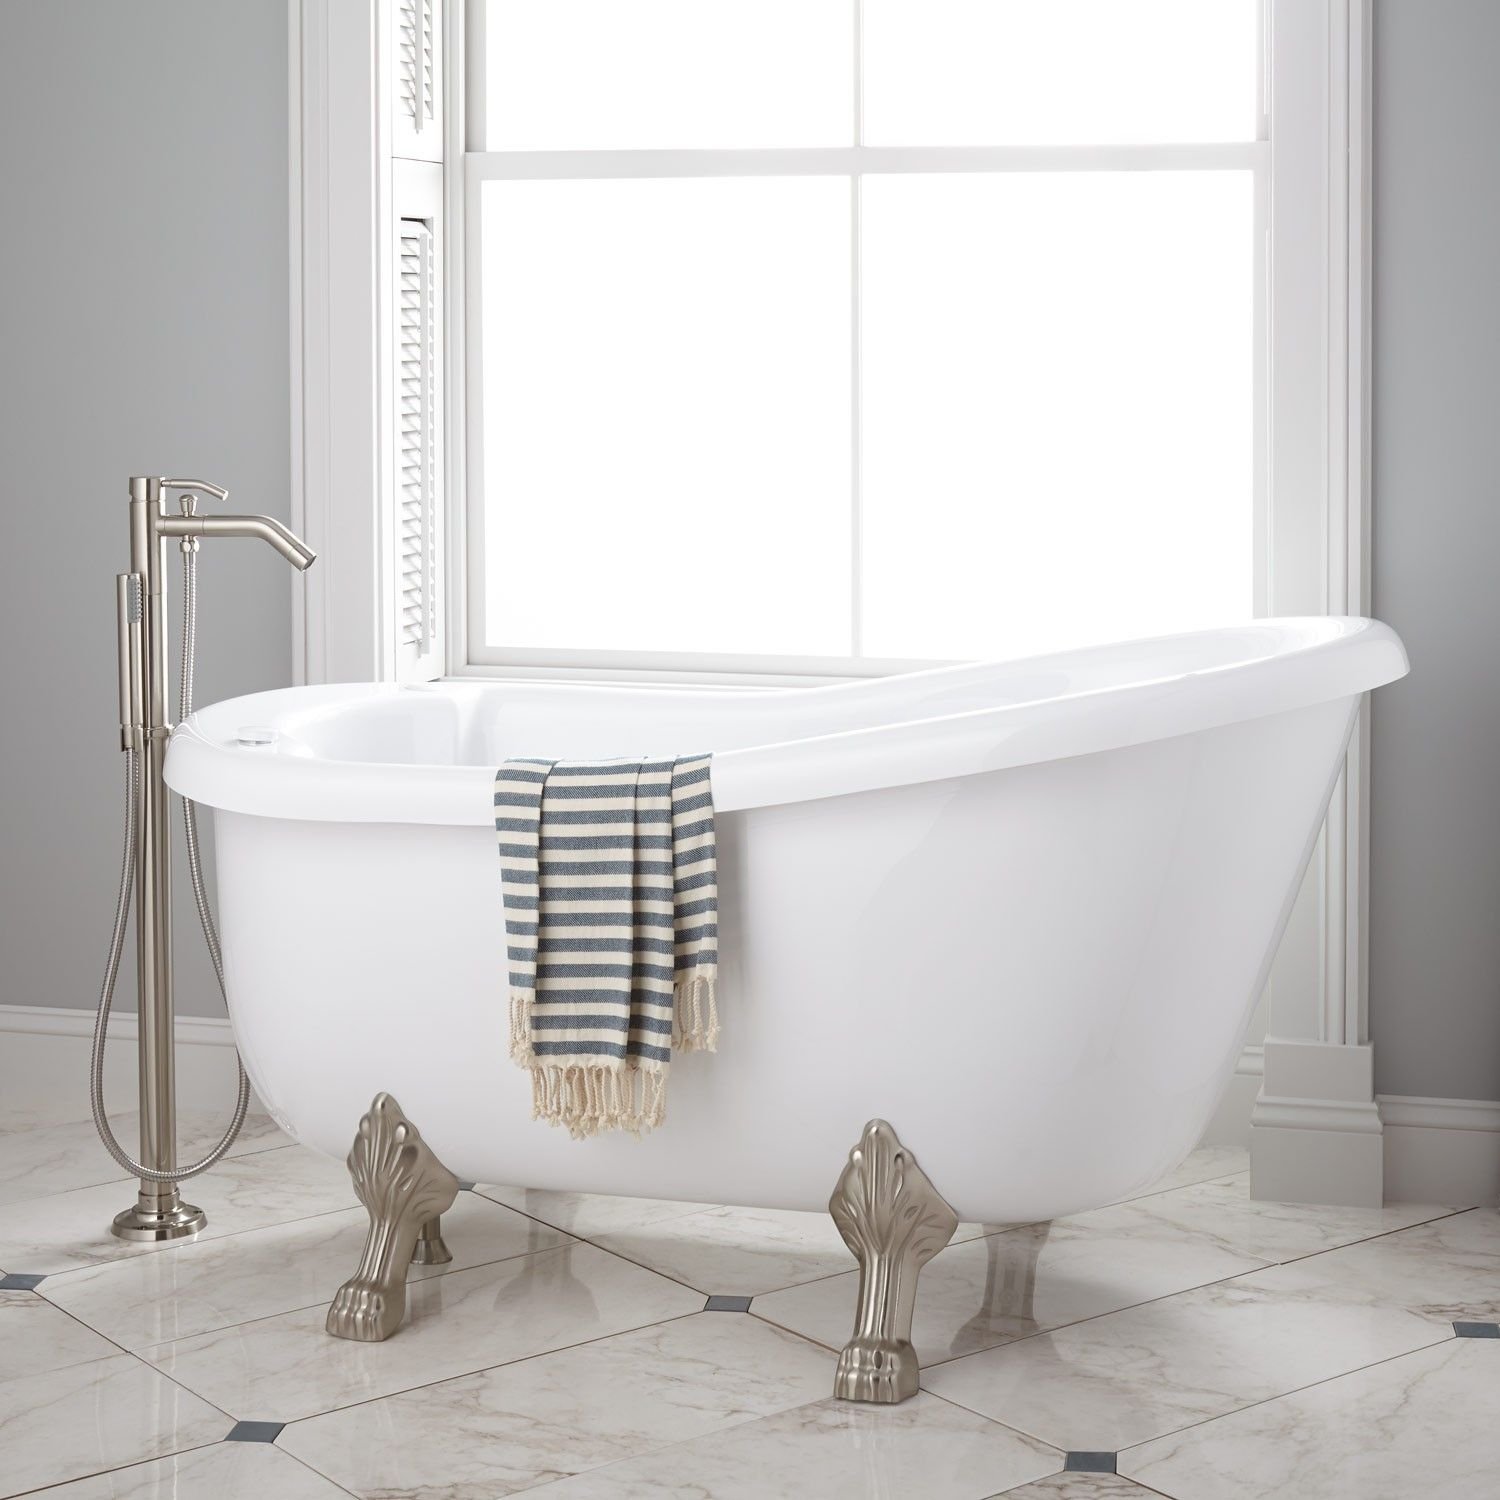 Pearson Acrylic Clawfoot Whirlpool Tub | For the Home | Pinterest ...